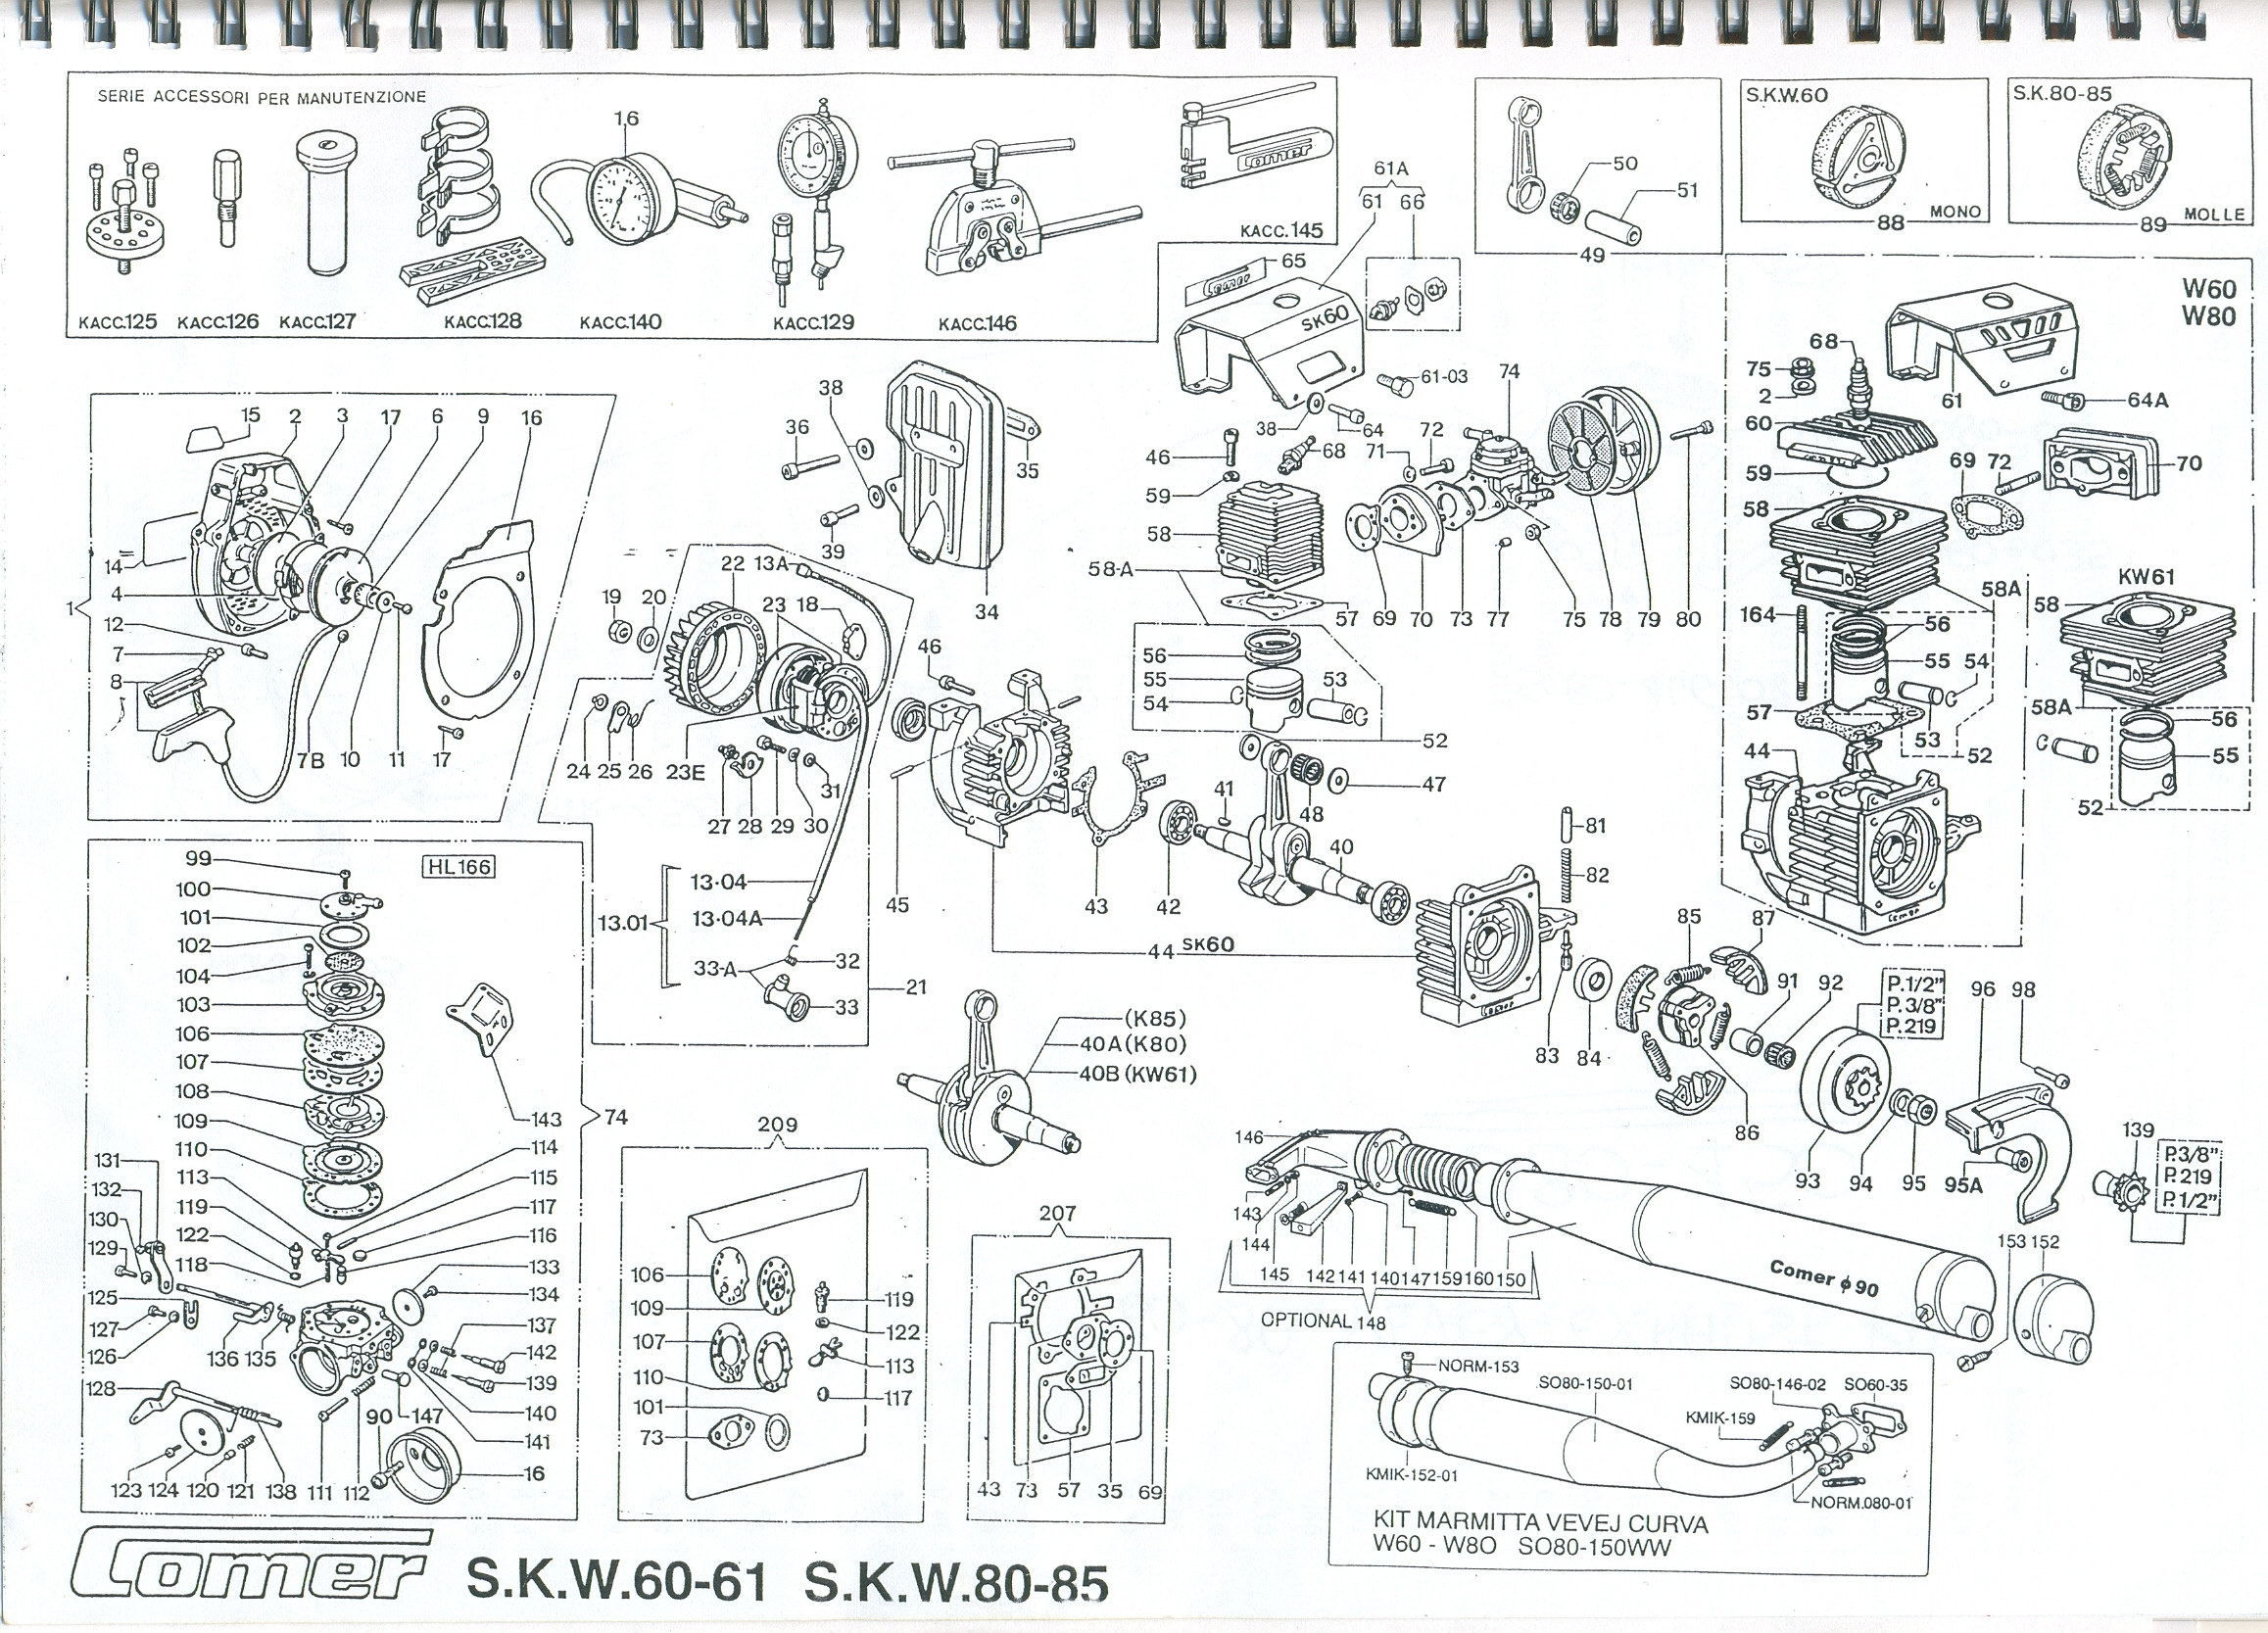 2015 Cyclone Wiring Diagram How Can Get Full Engine Diagrams Grabcad Questions